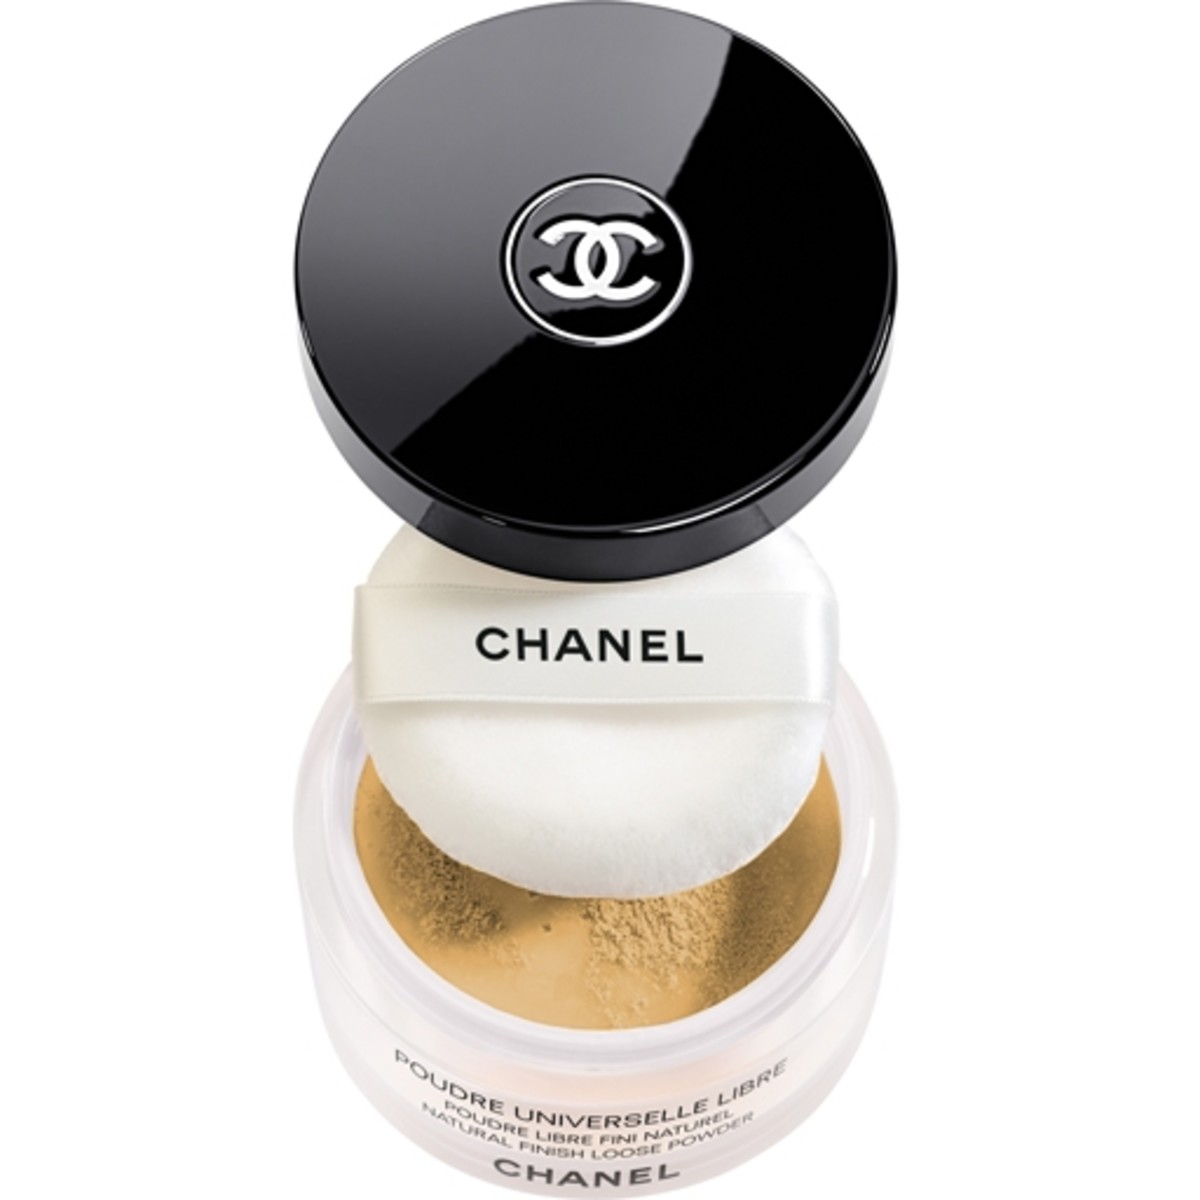 Chanel Poudre Universelle Libre Natural Finish Loose Powder in 30 Naturel